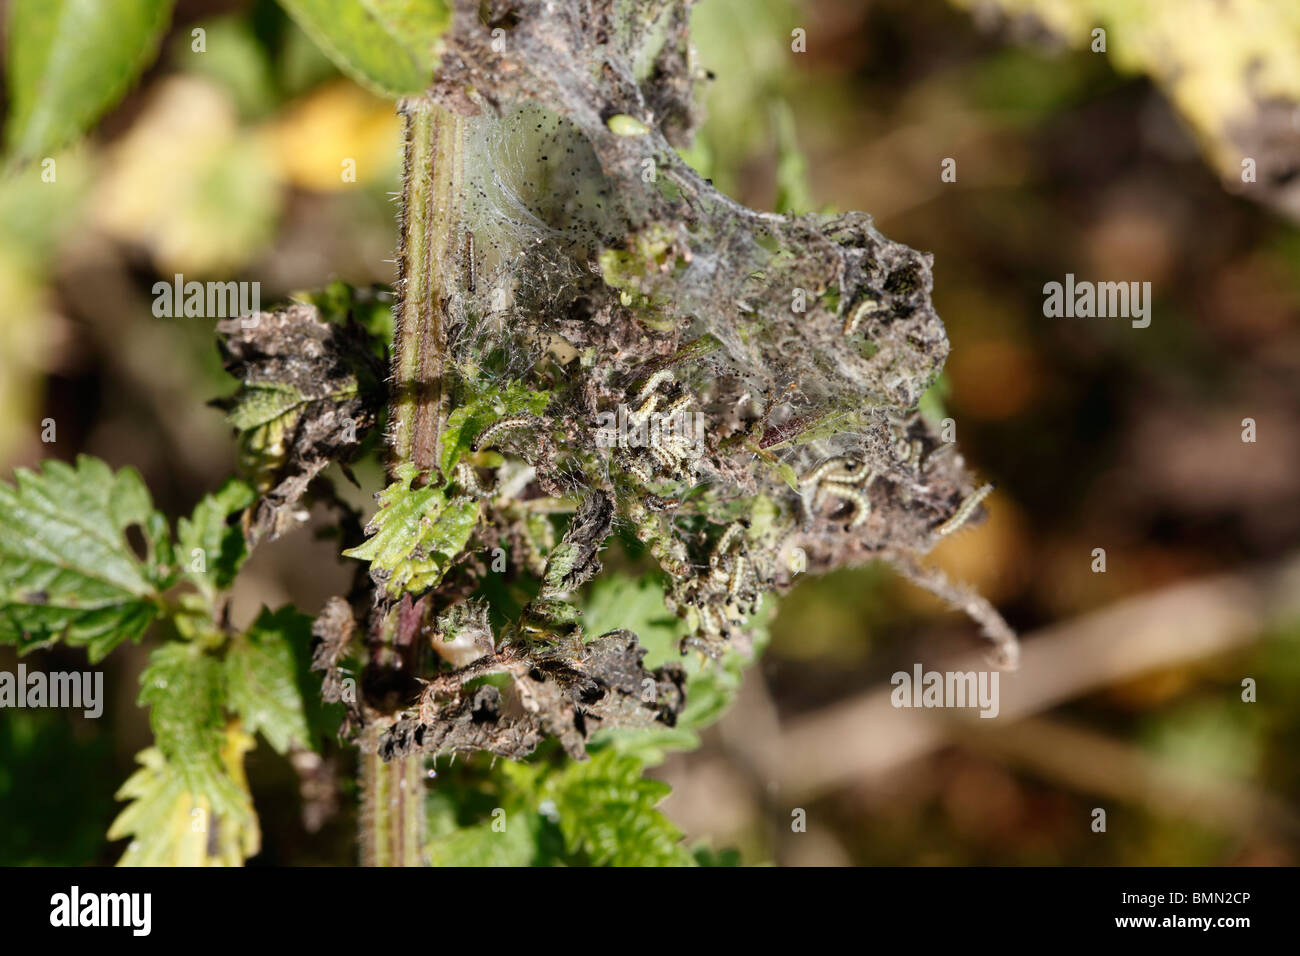 Small tortoiseshell (Aglais urticae) caterpillars Ccoming out of web - Stock Image